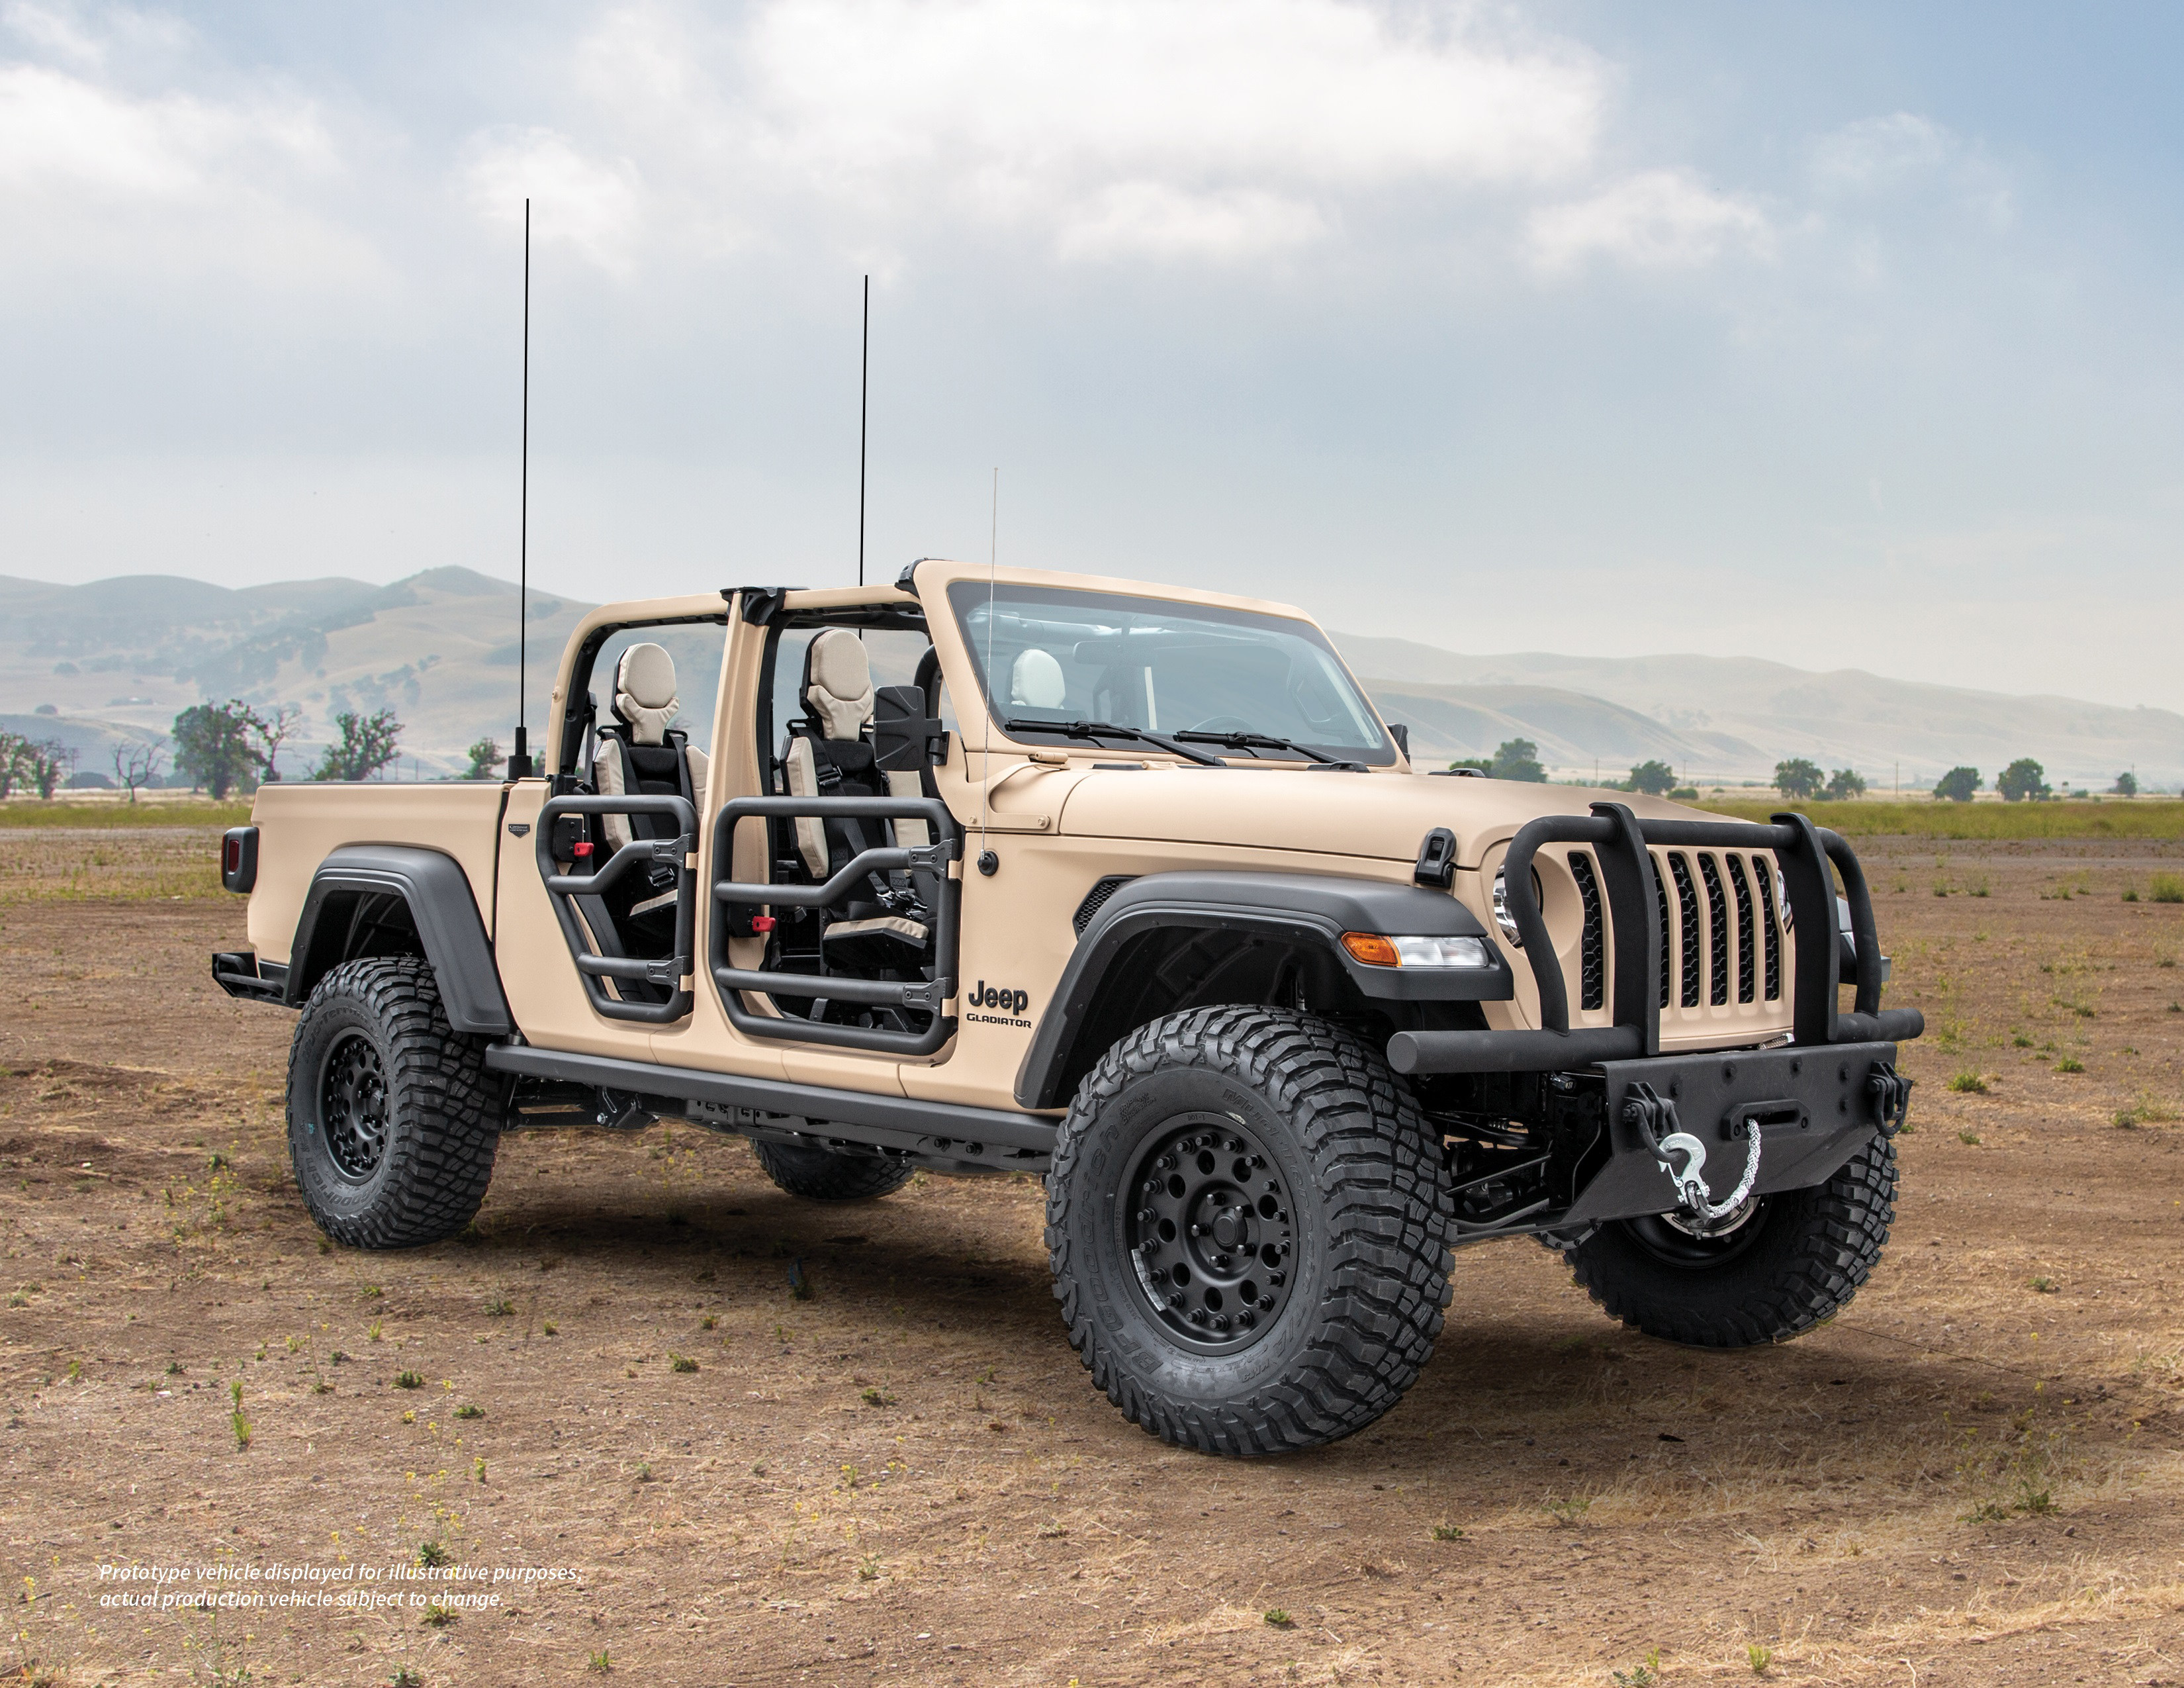 Mil-spec Jeep Gladiator places pickup versatility on active duty